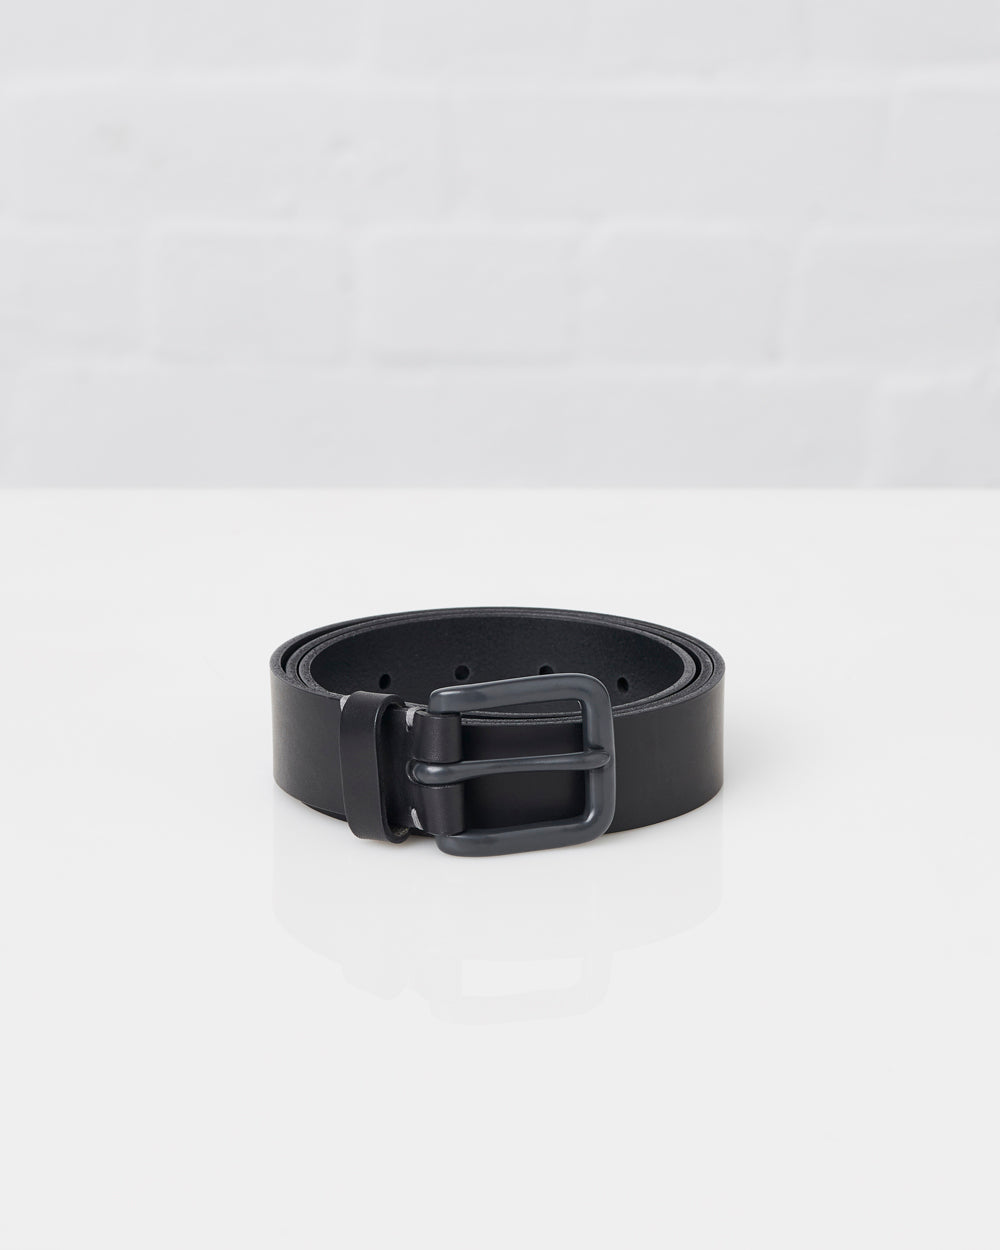 Modernist Belt - Pitch Black / Grey [LIMITED EDITION]